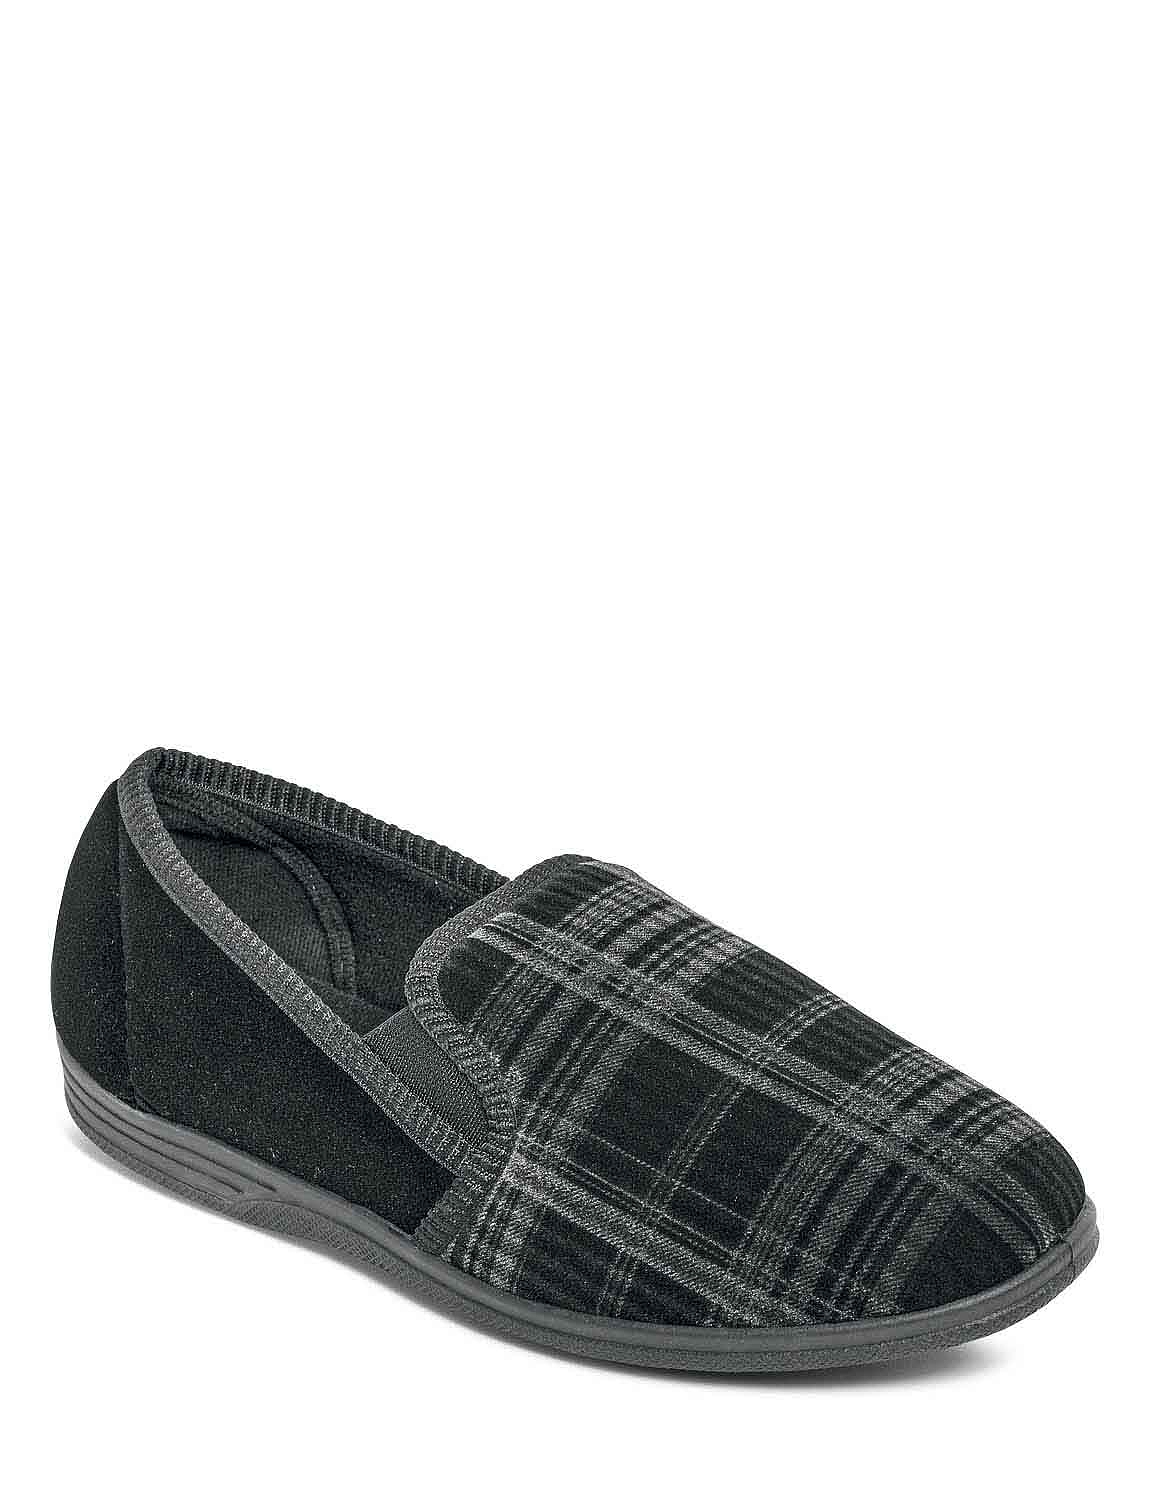 Washable Wide Fit Velour Slipper - Black